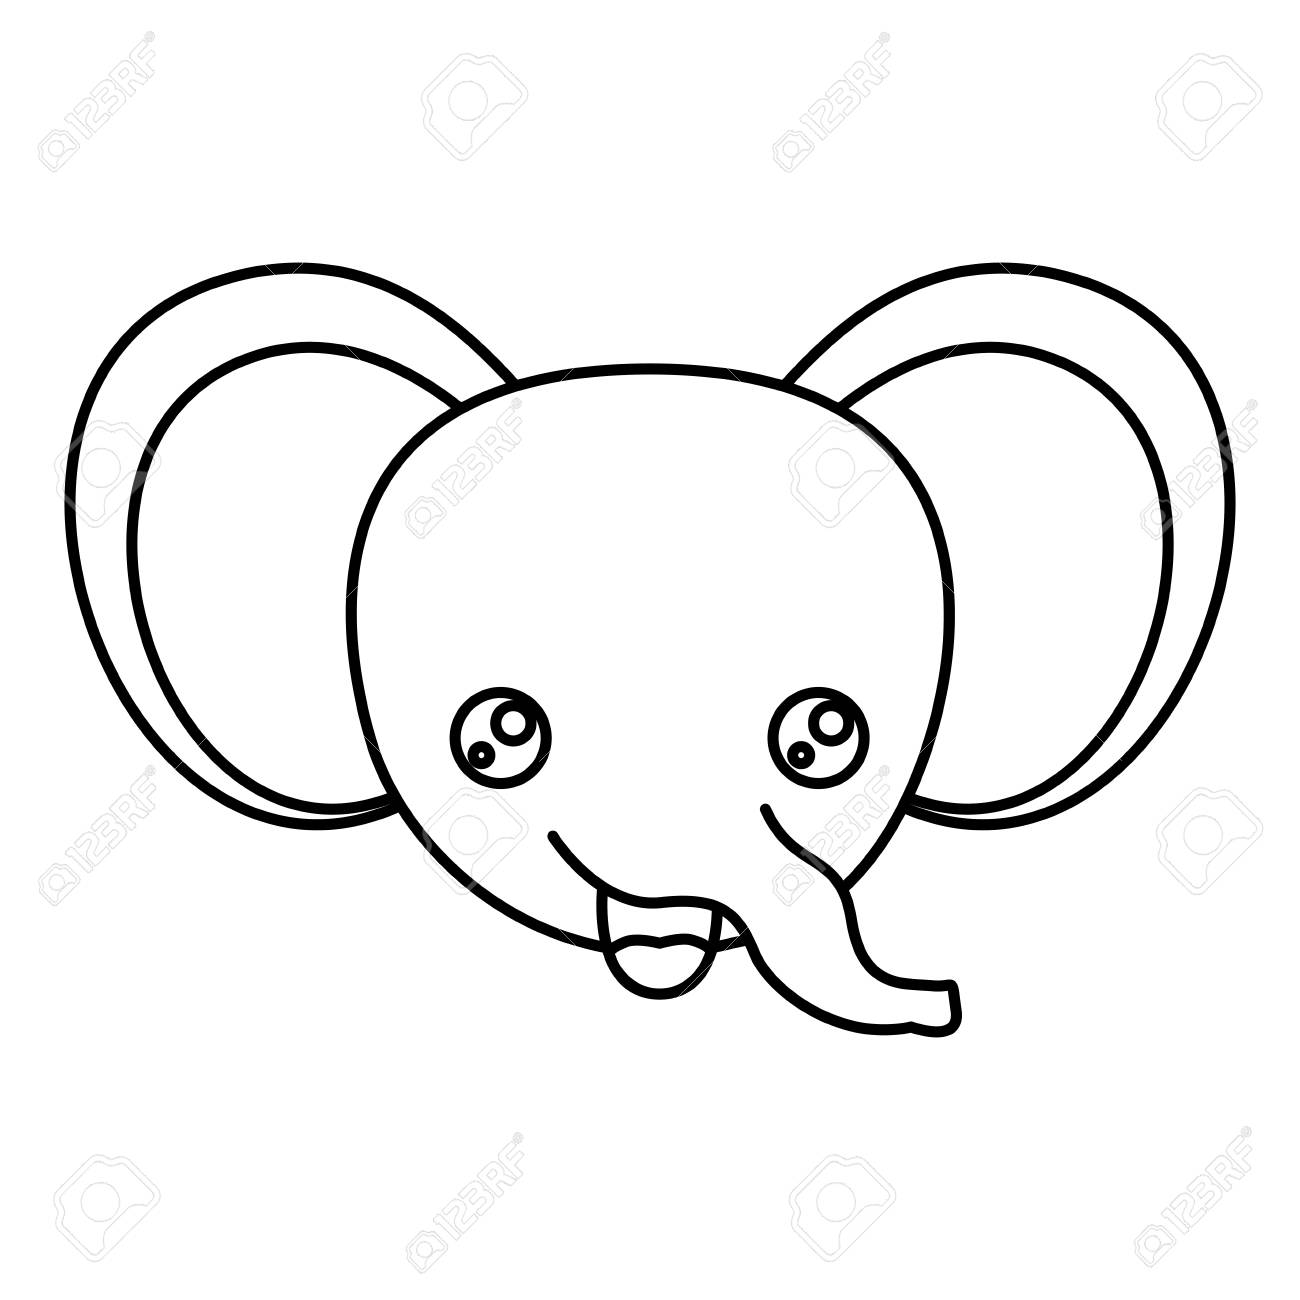 Sketch Silhouette Of Kawaii Caricature Face Elephant Cute Animal